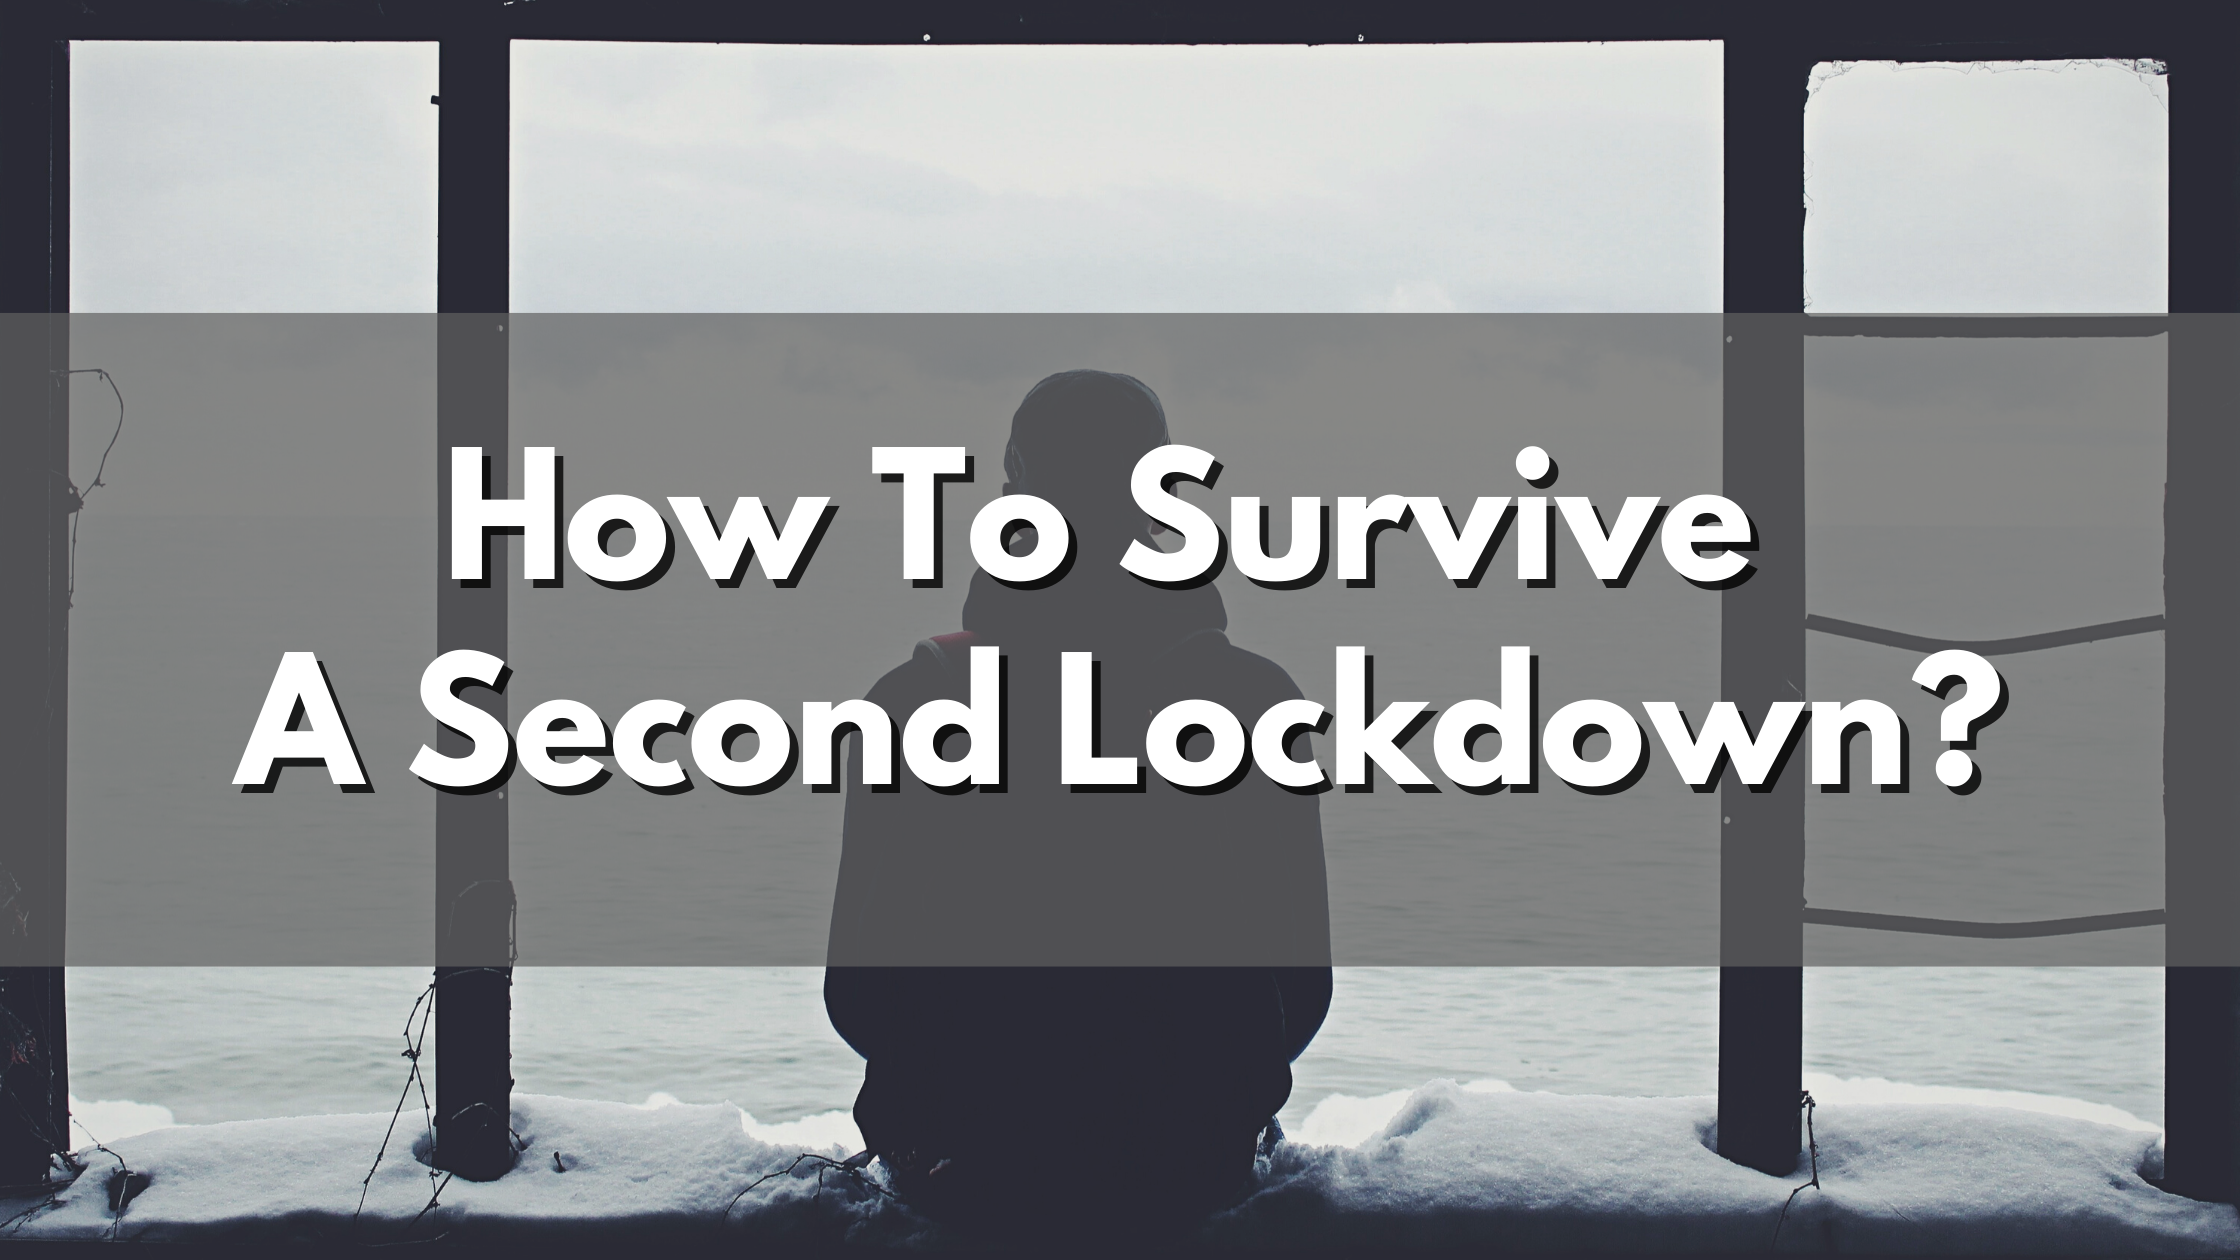 Top 3 Tips To Survive A Second Lockdown